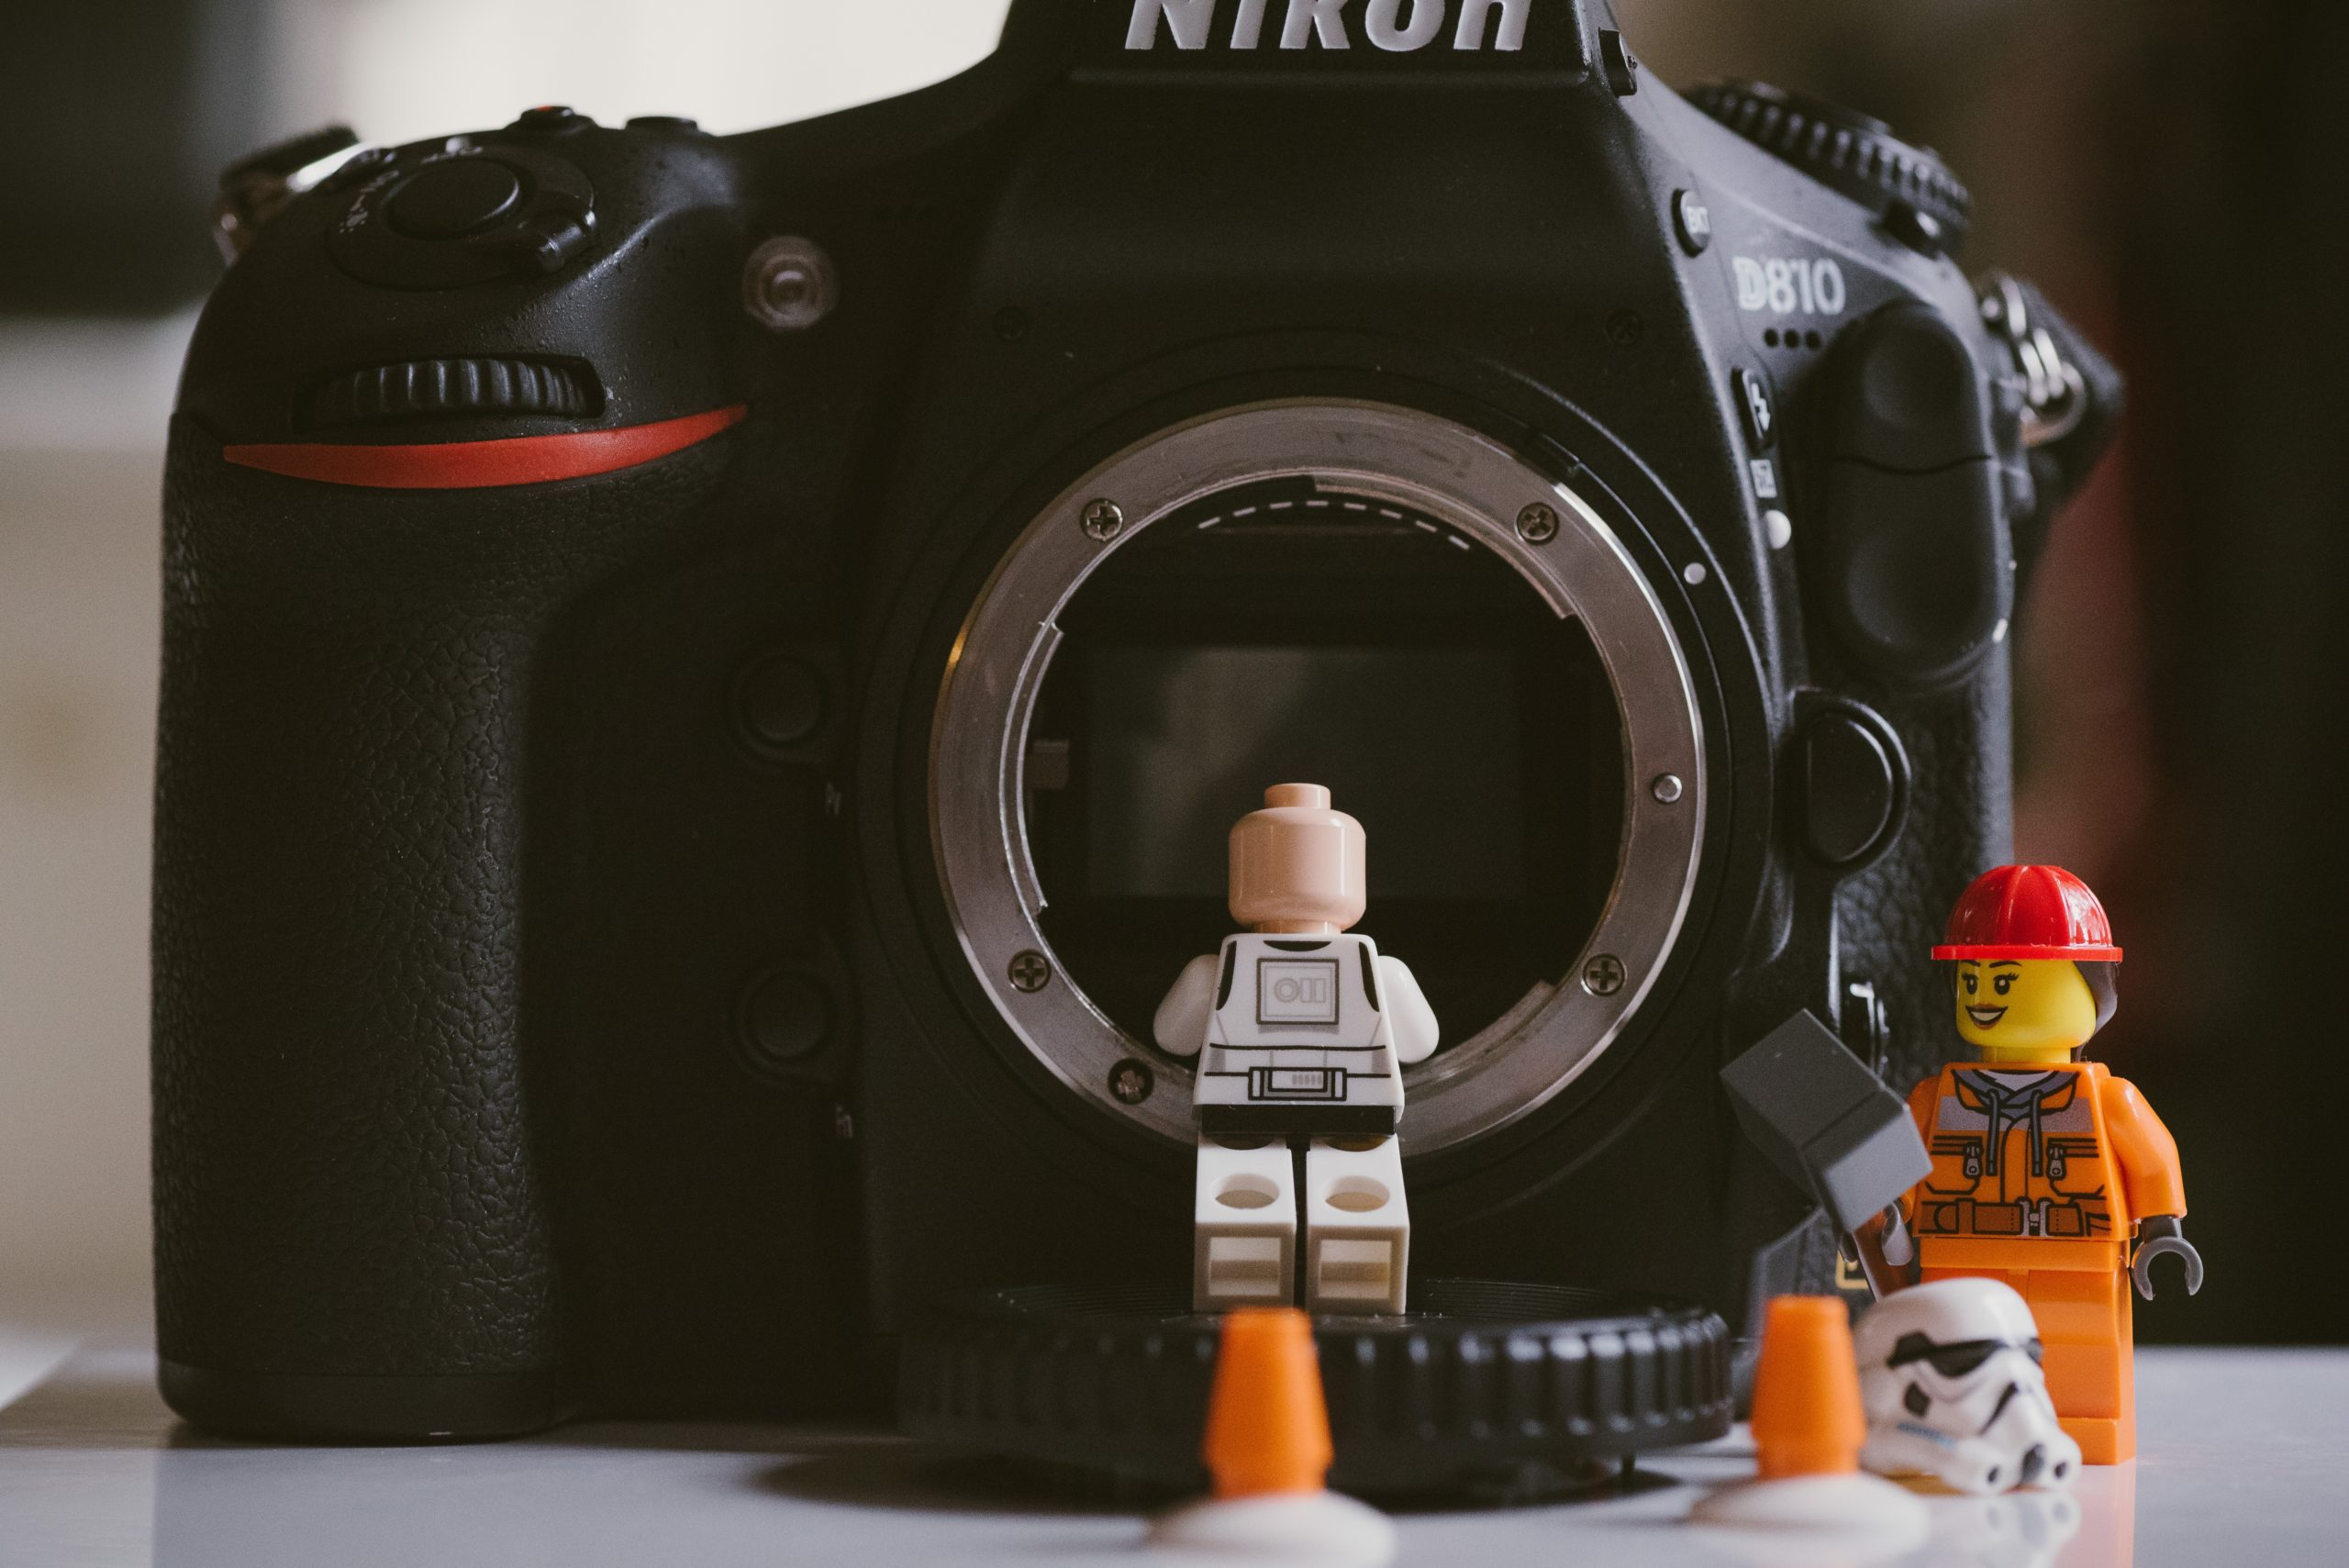 lego managing camera to mind privacy